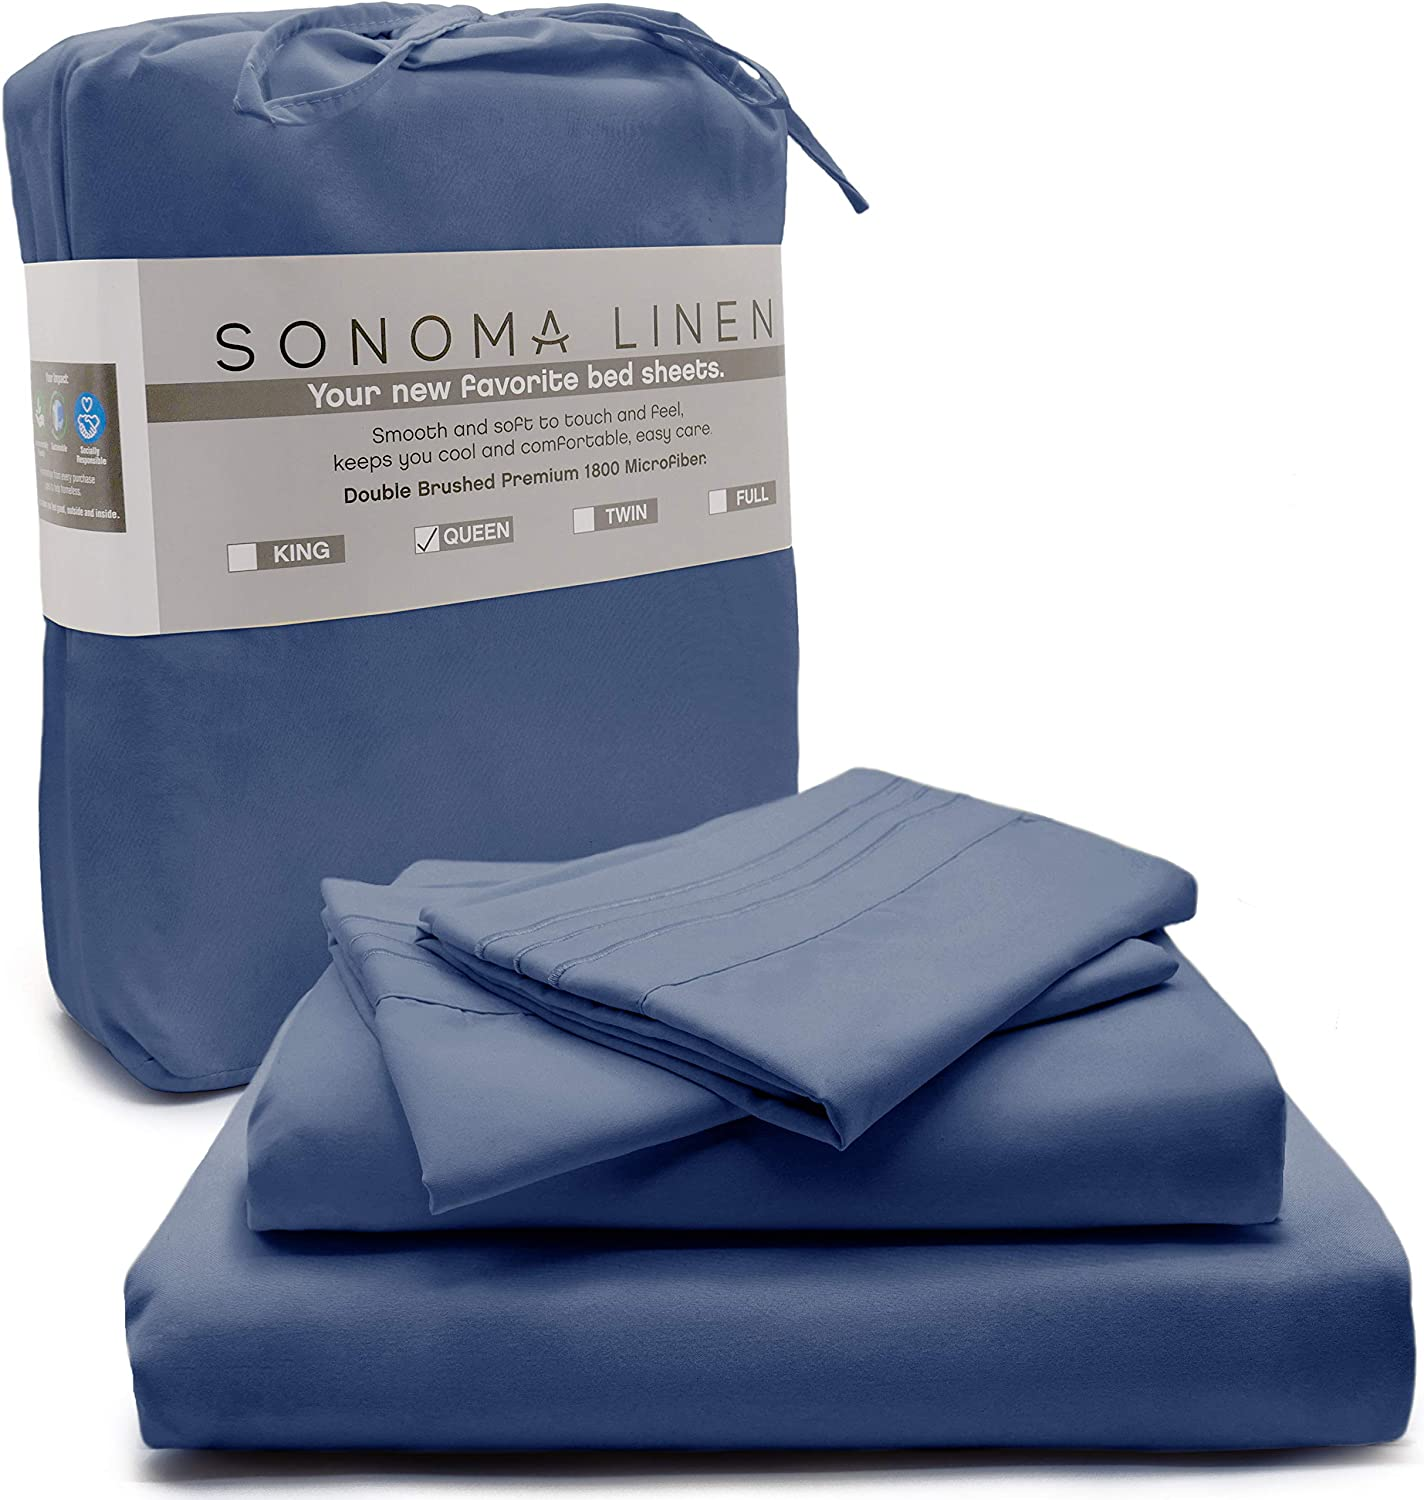 sonoma linen Super Soft Queen Bed Sheet Set Navy Blue 4 Piece Queen Size 1800 Thread Count Microfiber Bedding Wrinkle Stain and Fade Resistant Breathable and Cooling Hotel Quality Deep Pocket Sheets